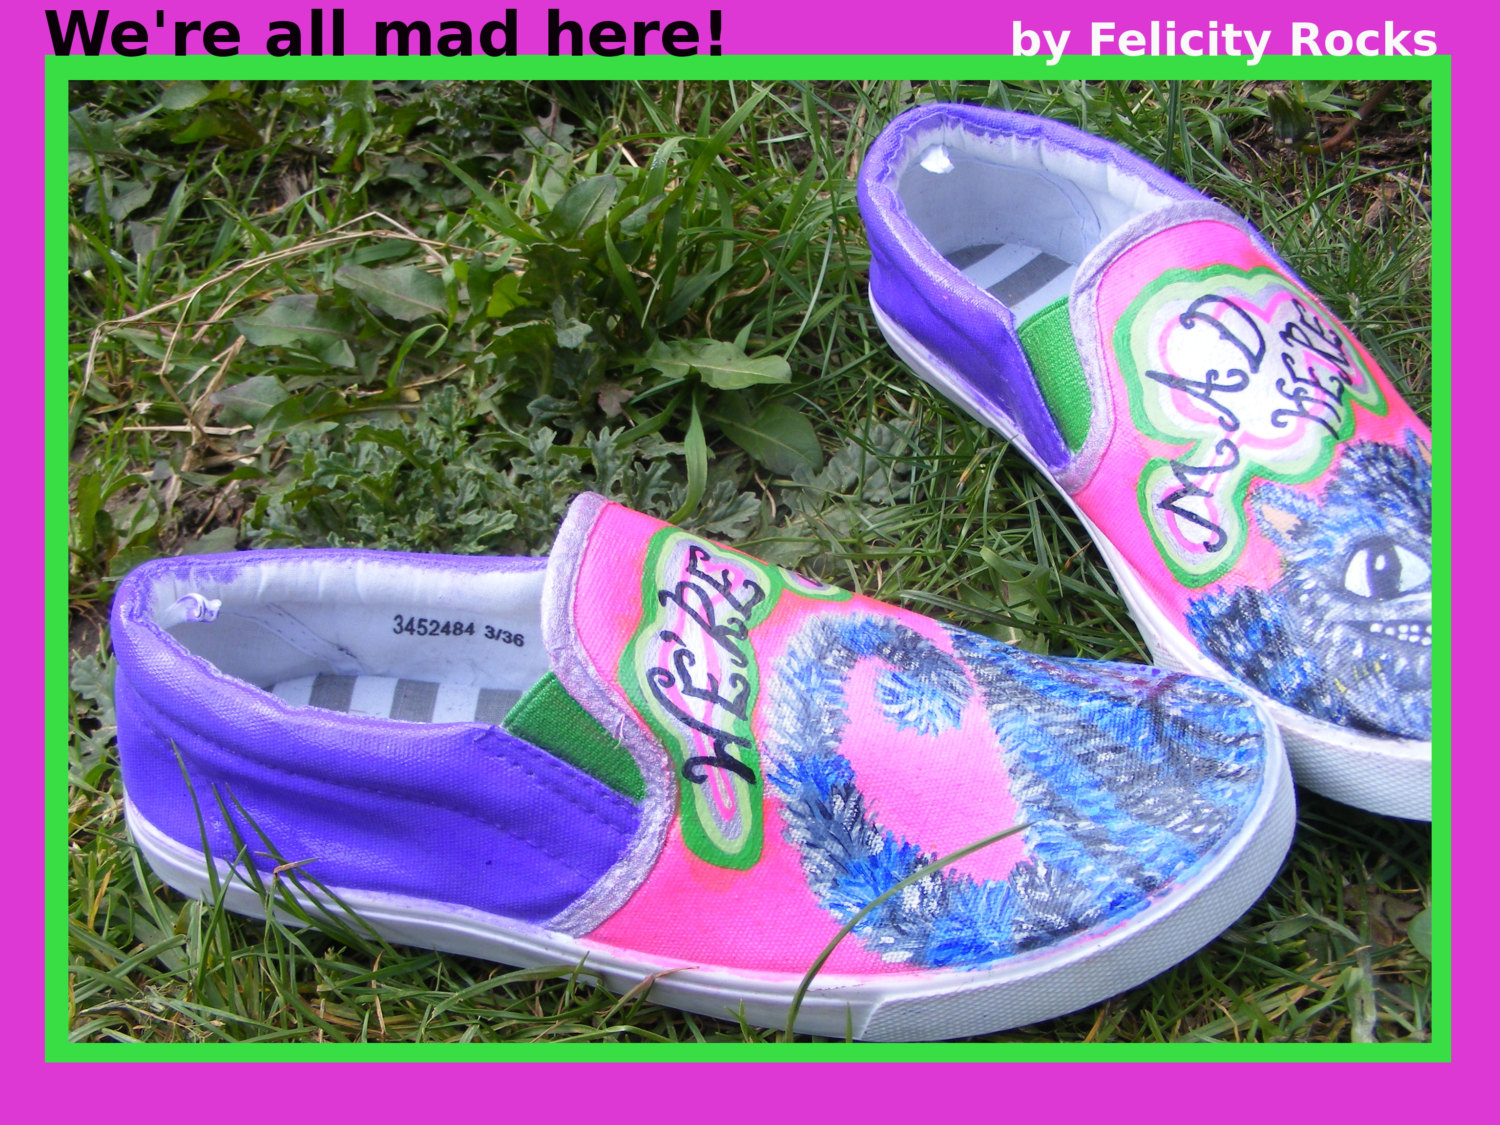 Cheshire cat, we're all mad here, hand painted shoes (alice in wonderland)